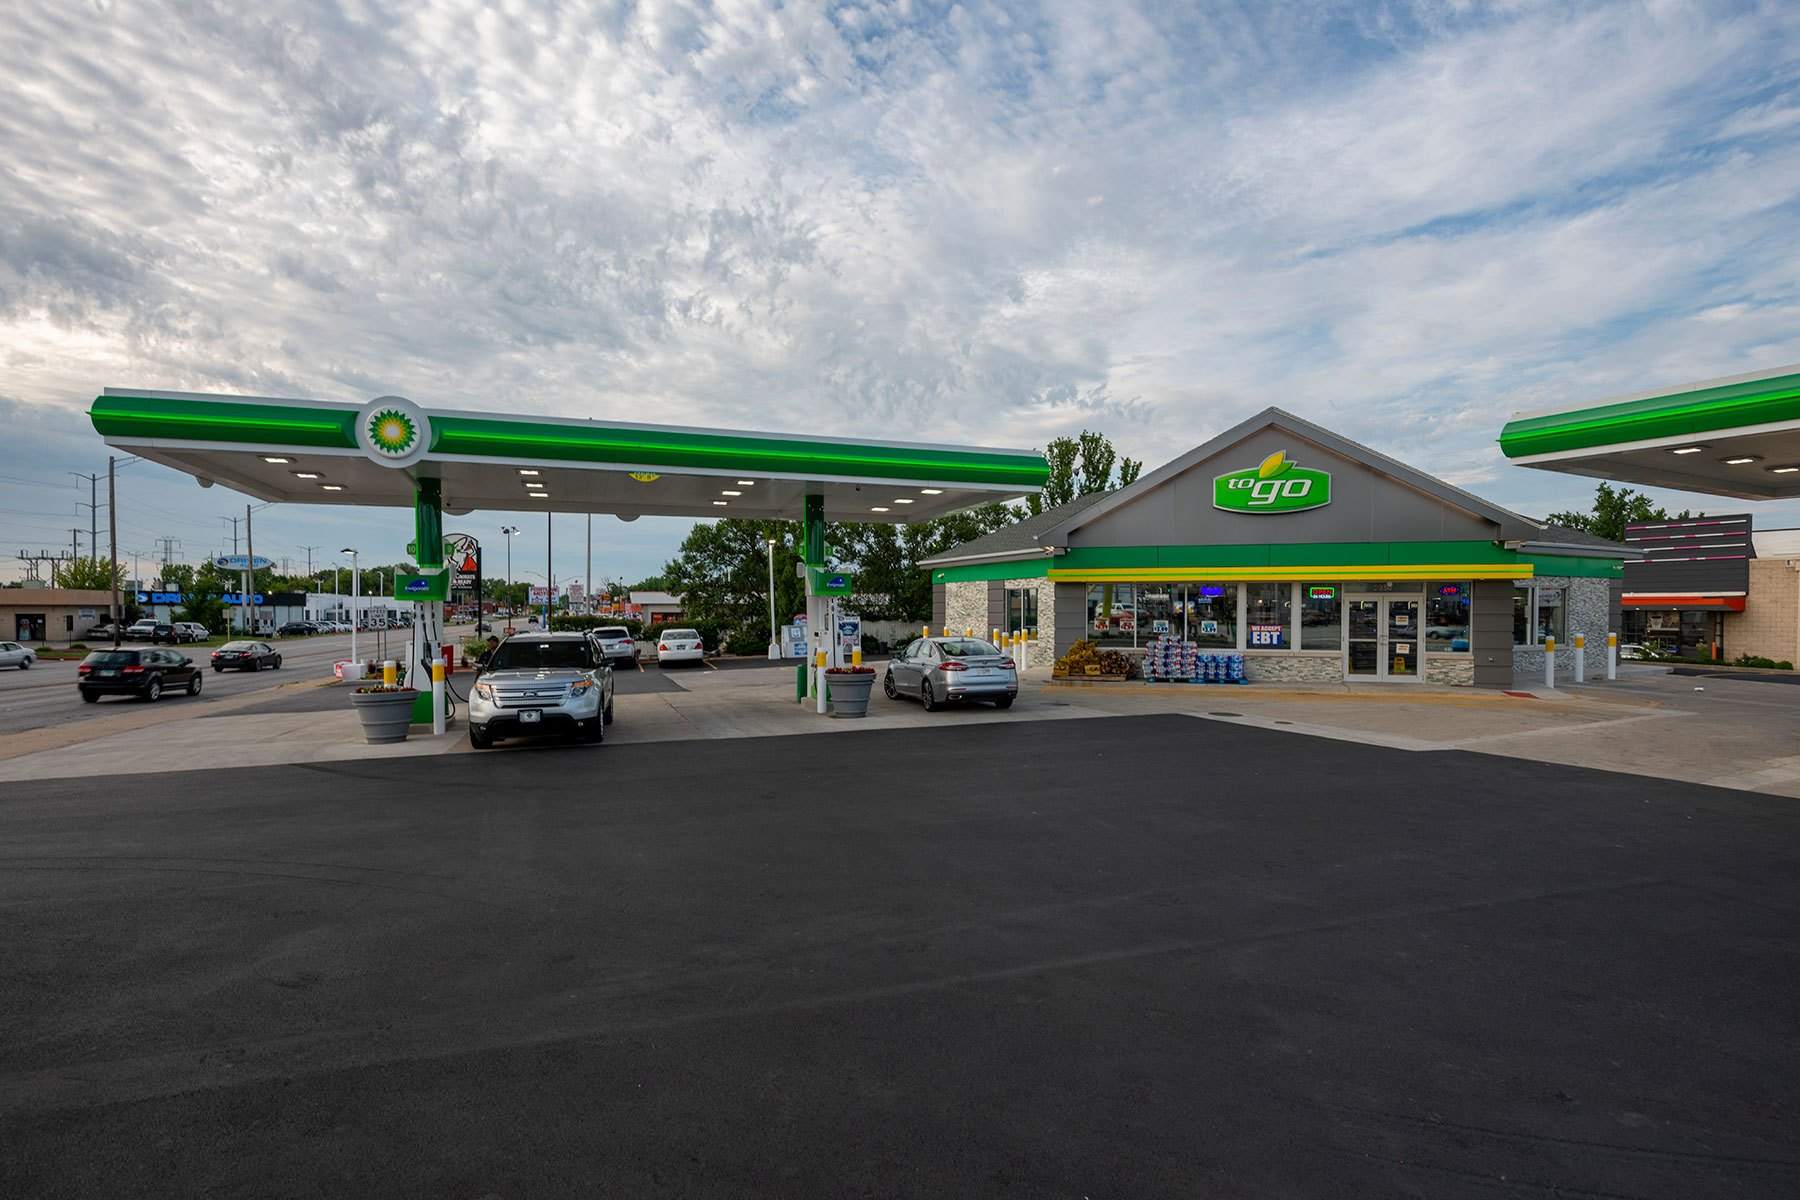 Northern View - BP Gas Station in Waukegan Custom Home. America's Custom Home Builders: New Construction, Remodeling, Restoration Services. Residential and Commercial.